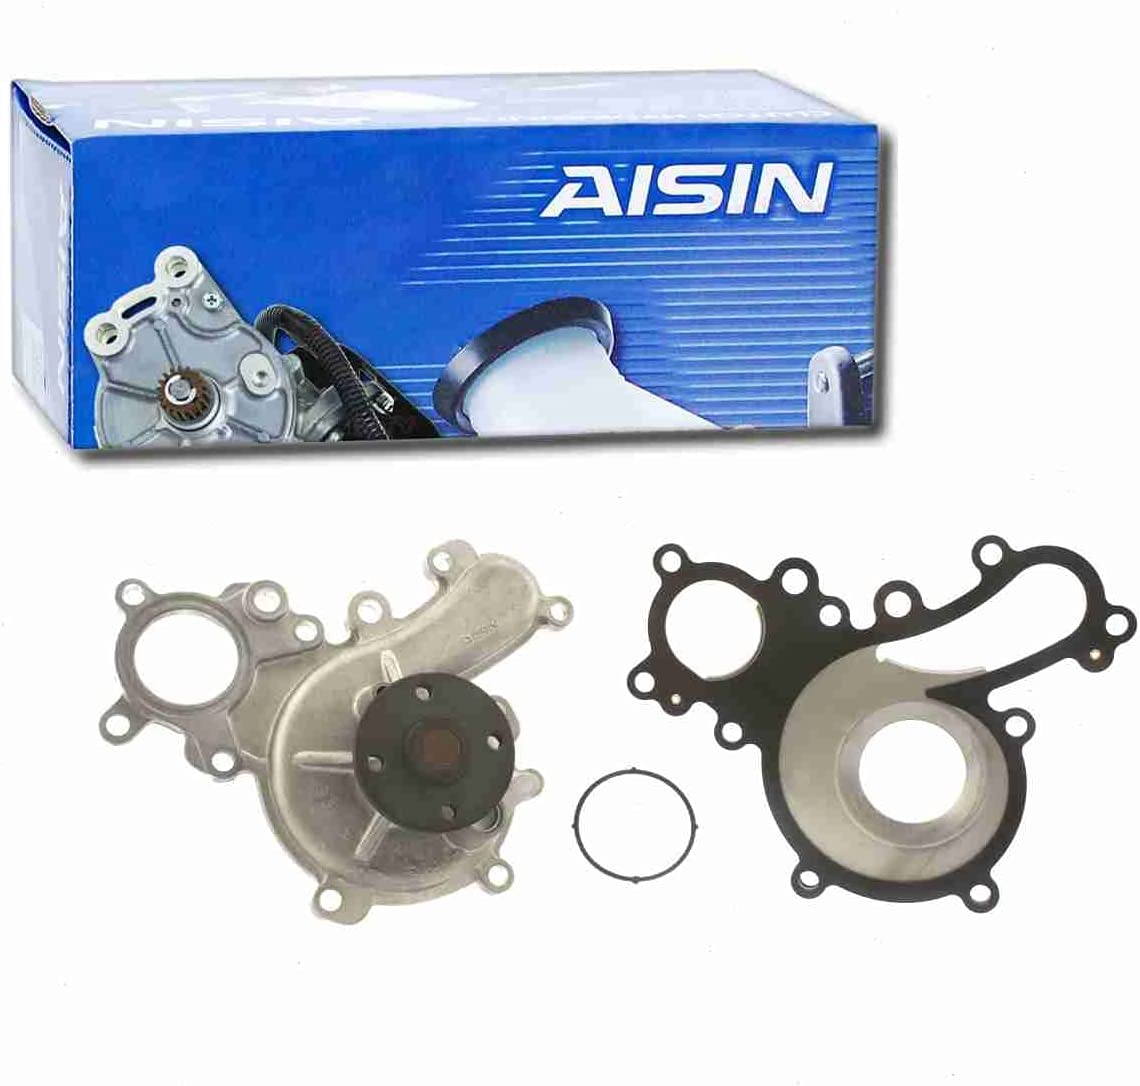 AISIN Engine Water Deluxe Pump Free shipping on posting reviews compatible with 5.7L Tundra Toyota 20 V8